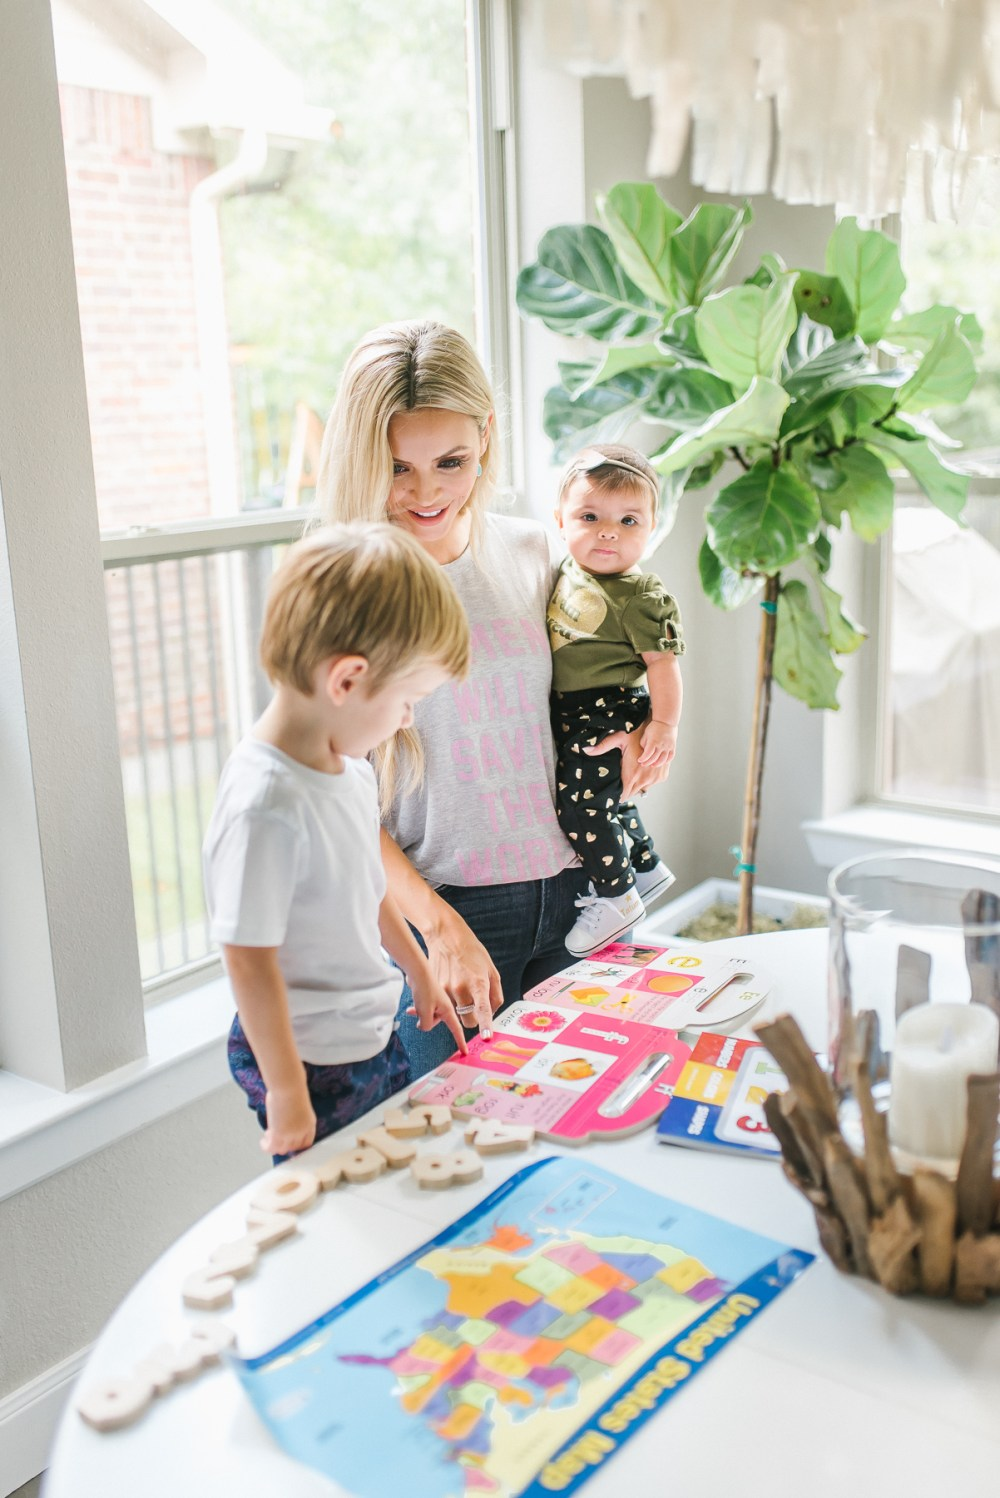 Here are some of my favorite toddler activities that not only Tru loves, but are very educational! So mom loves them too!